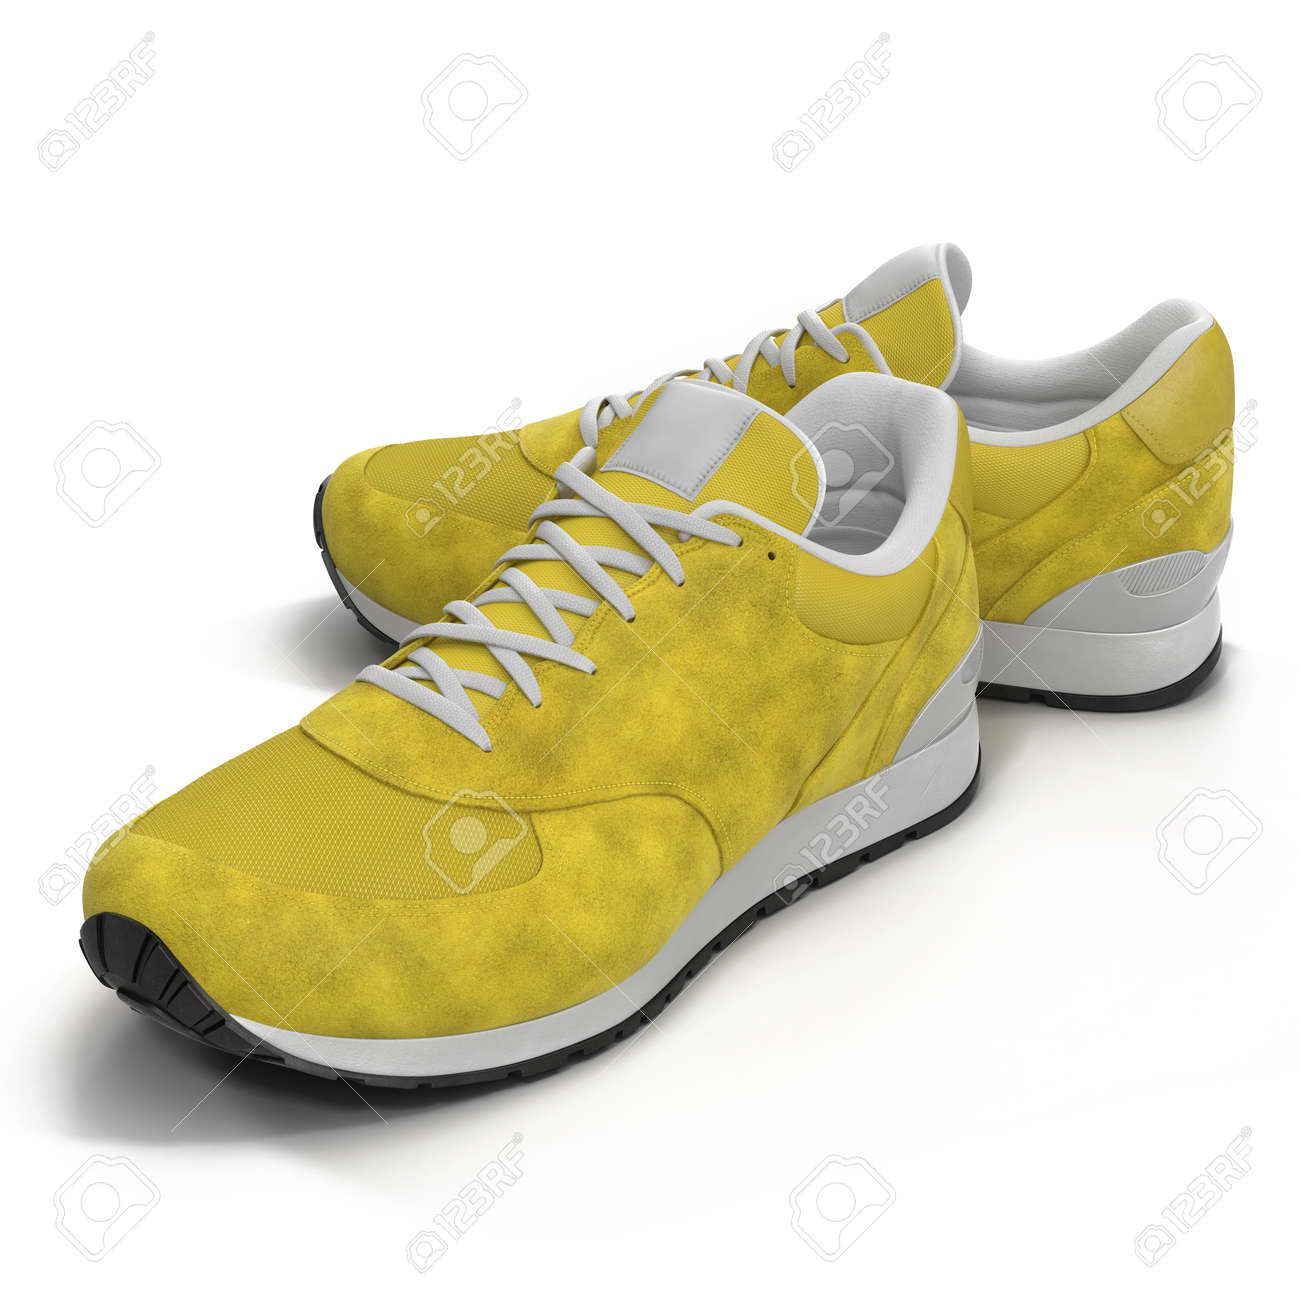 6ca64edb16af79 Illustration - Yellow sneakers isolated on White Background 3D Illustration